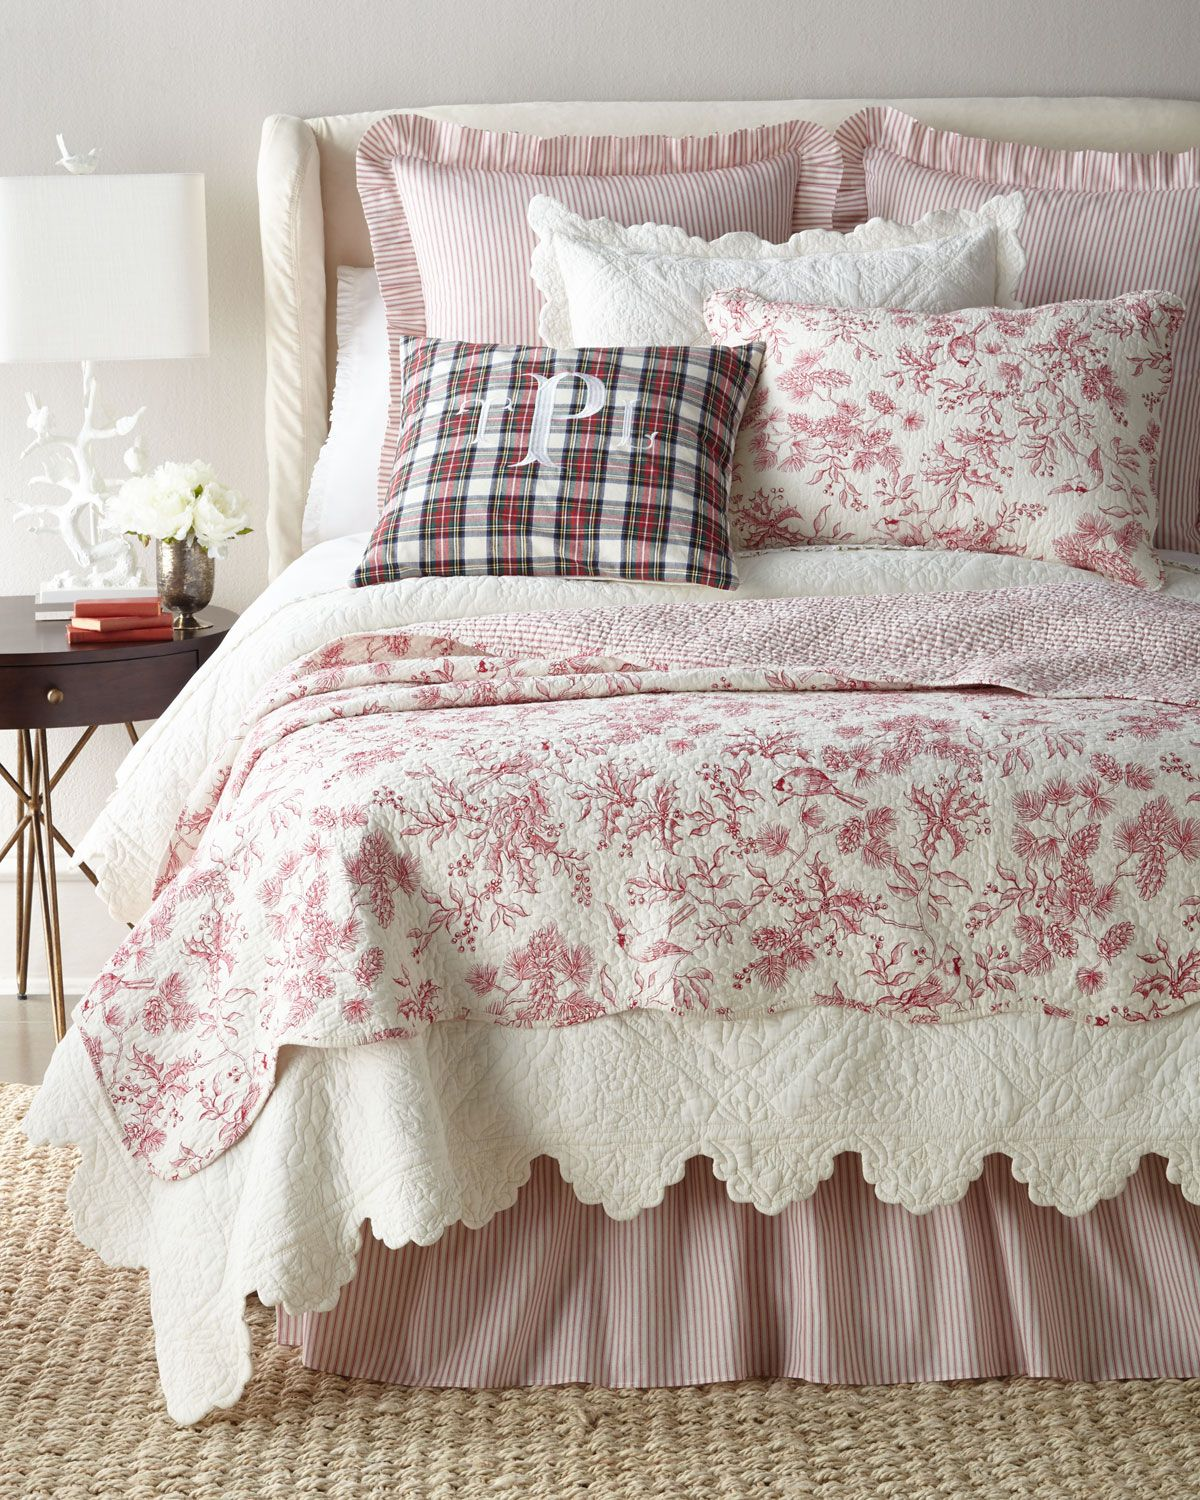 Amity Home Evergreen Toile Bedding French Country Bedding Toile